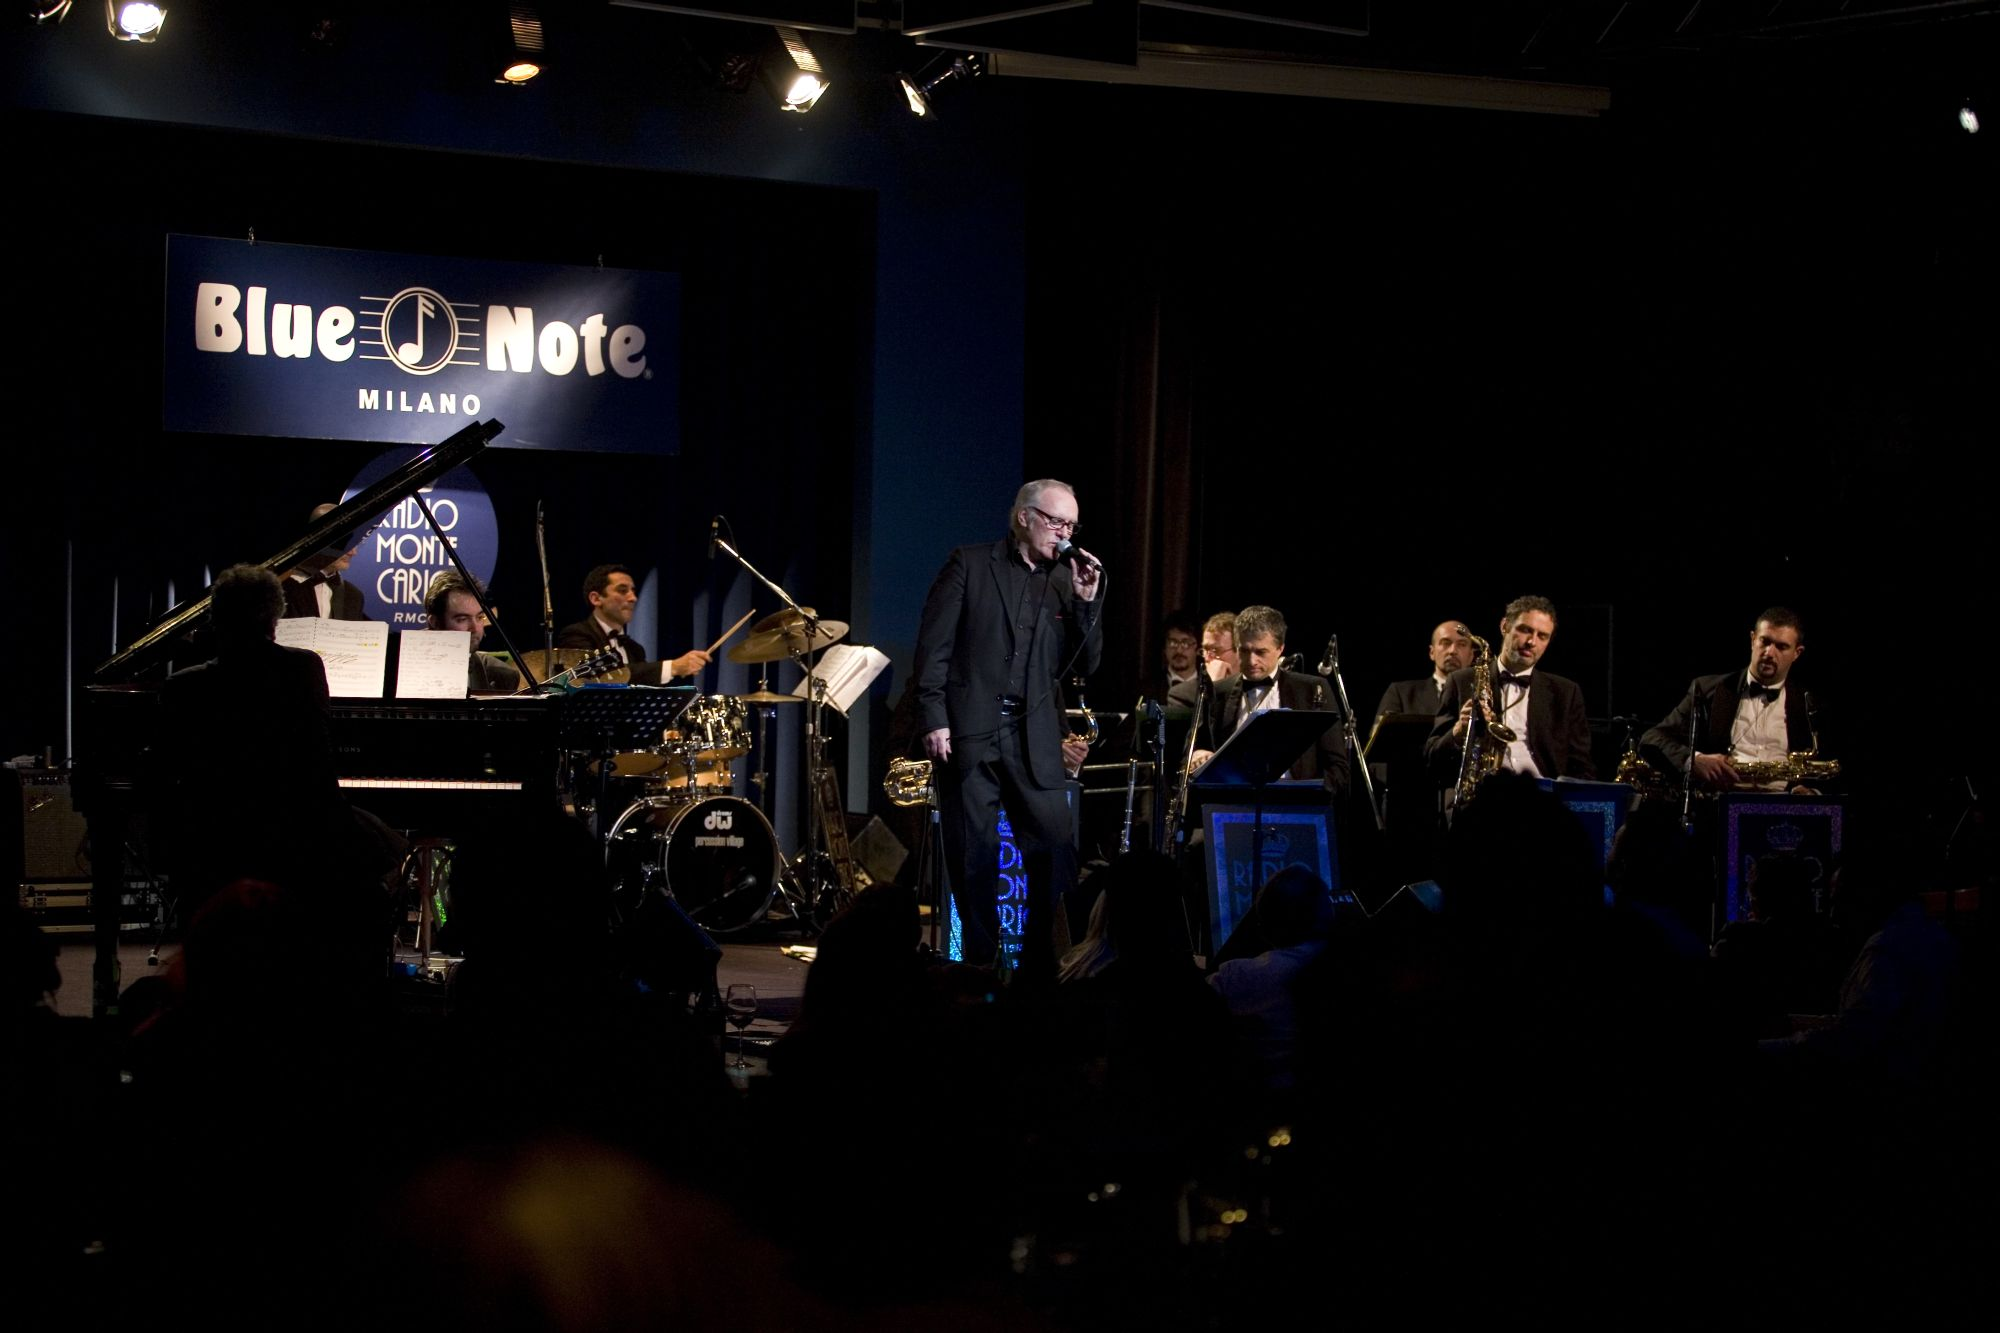 Blue Note_Nick The Nightfly_MontecarloOrchestra_0041_media